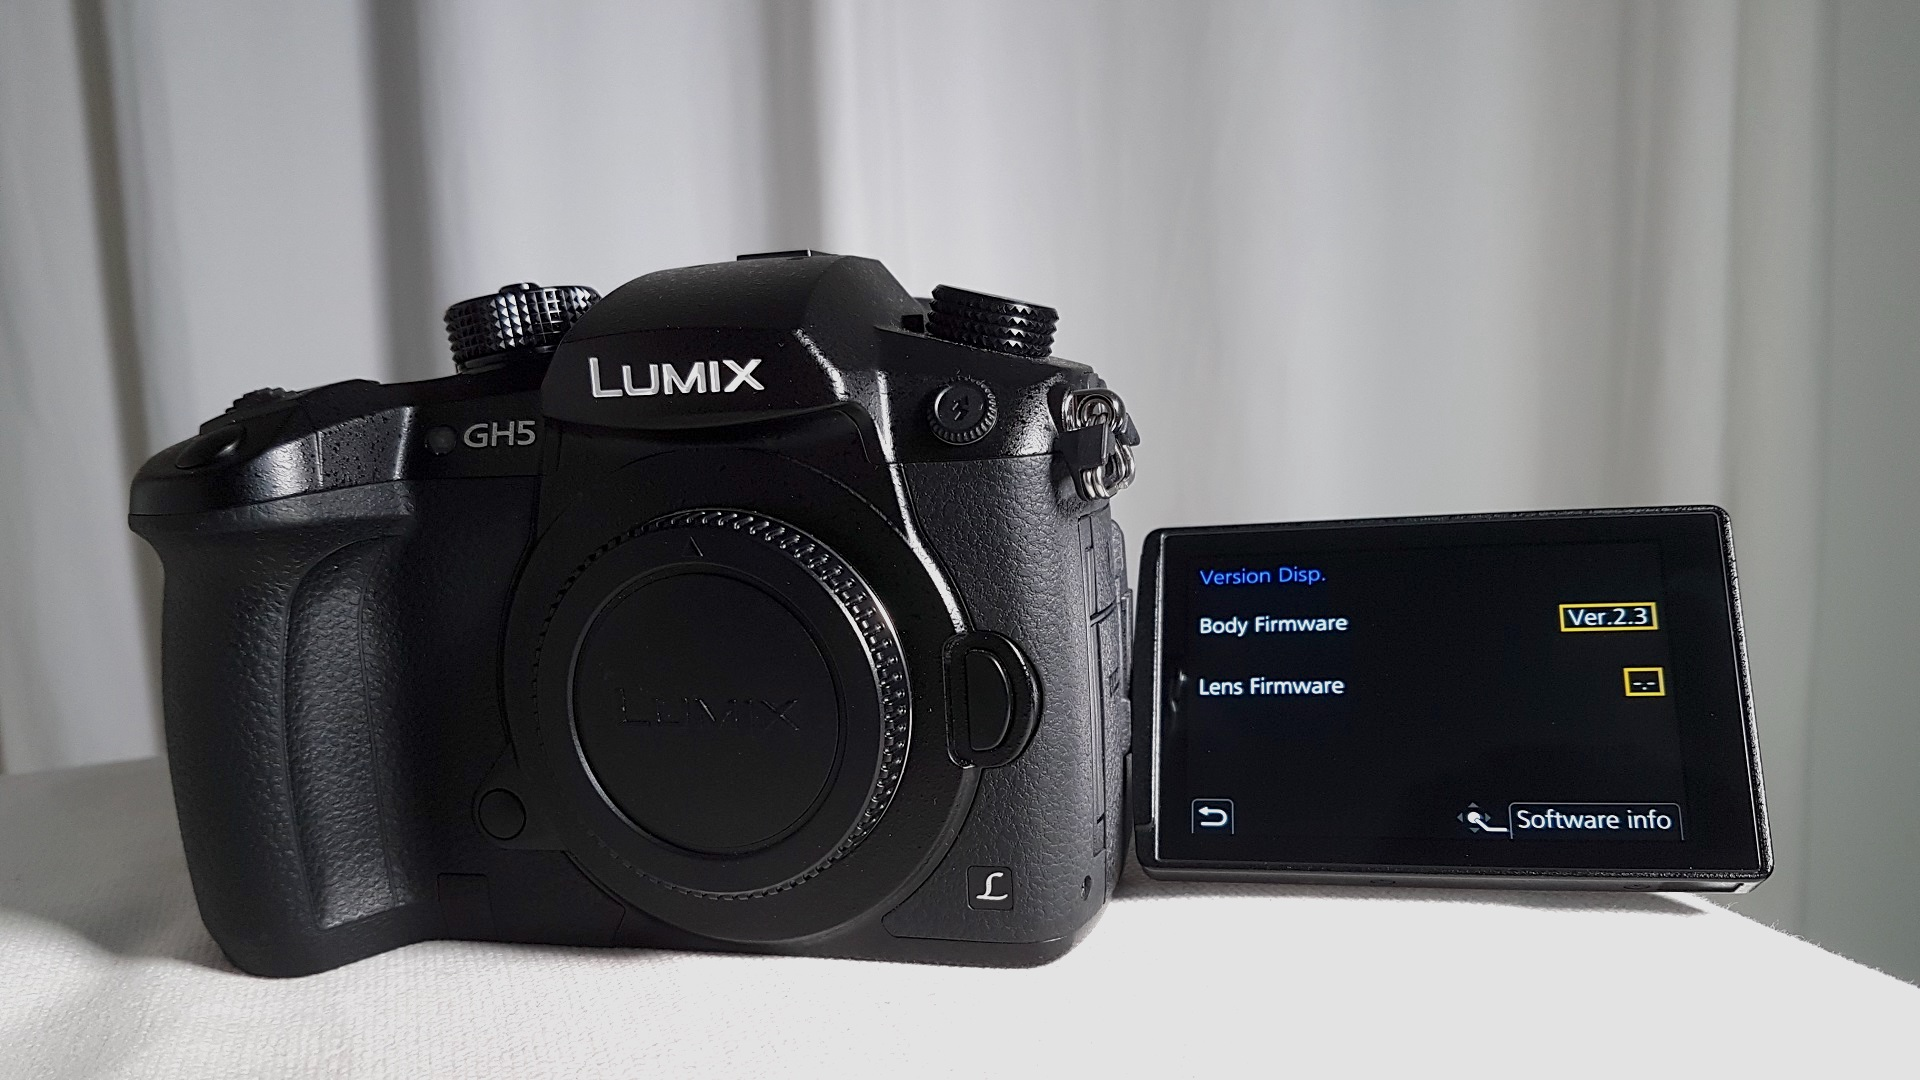 Panasonic GH5, GH5s, G9 Firmware Update - Improves Autofocus